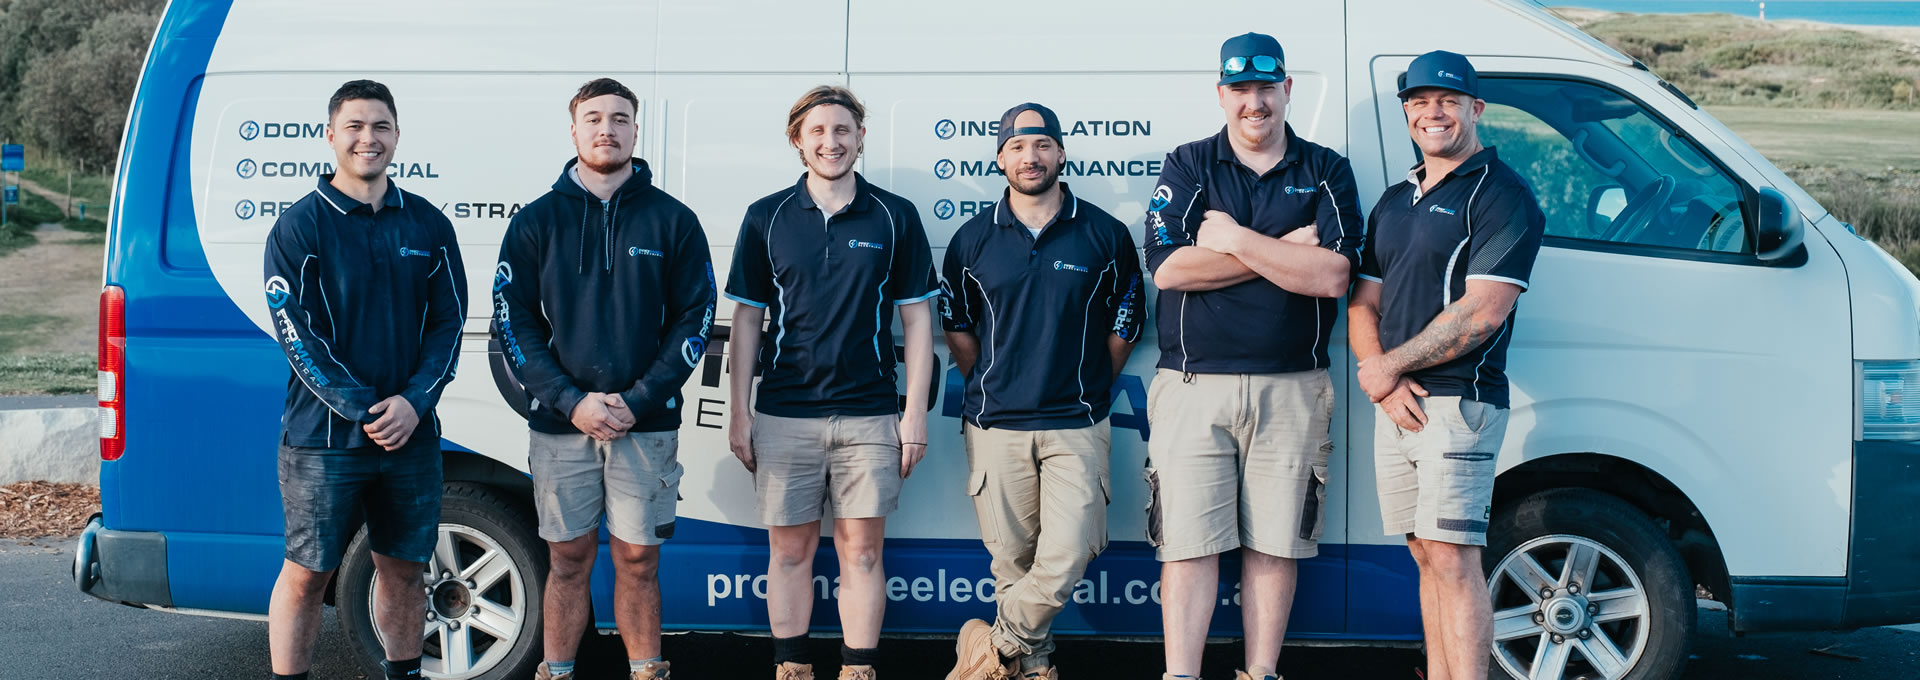 Pro Image Electrical -Sutherland Shire Team